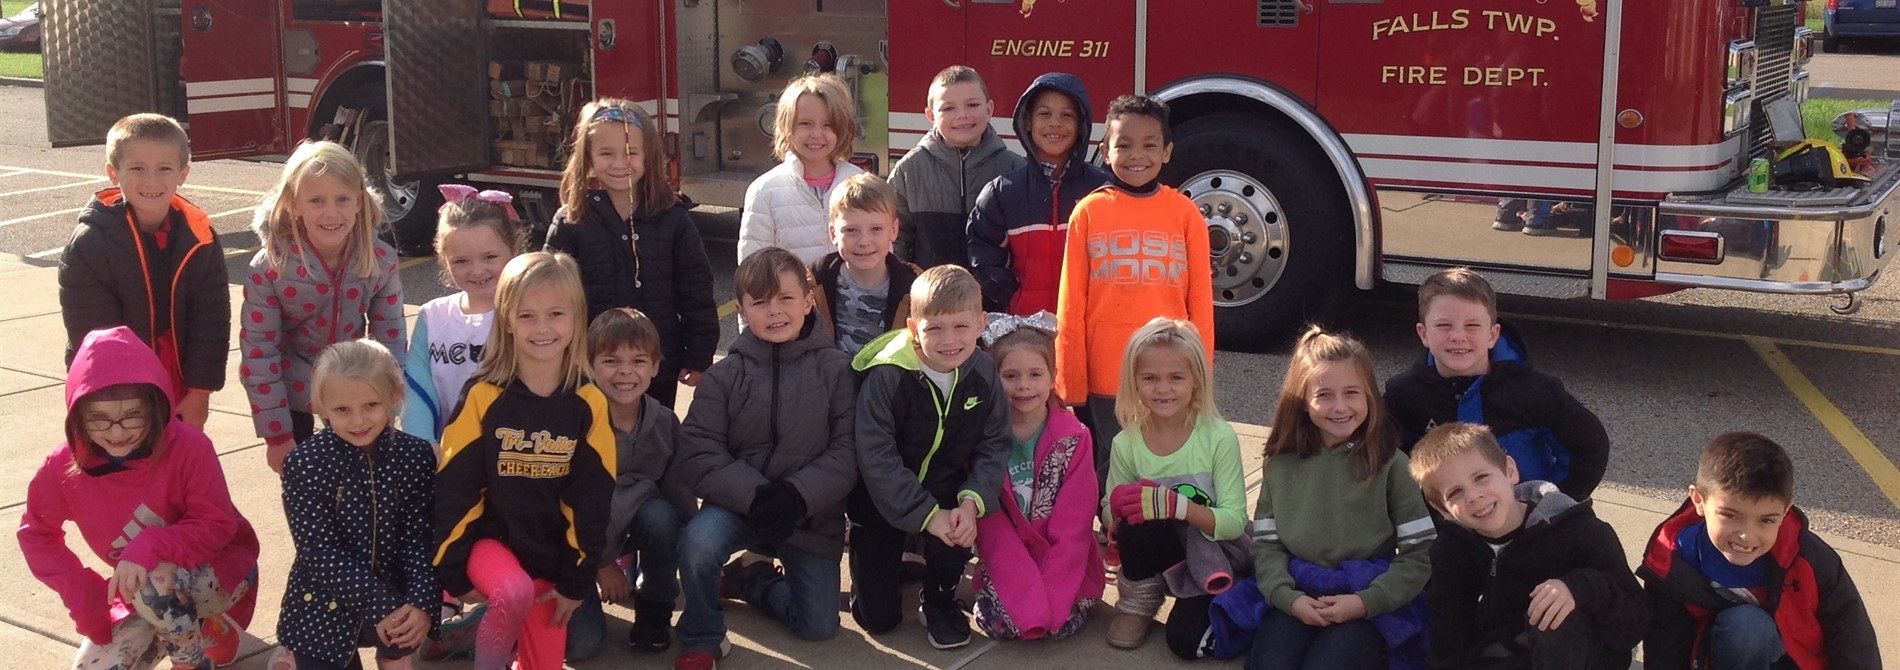 Thank you Falls Township Fire Department!